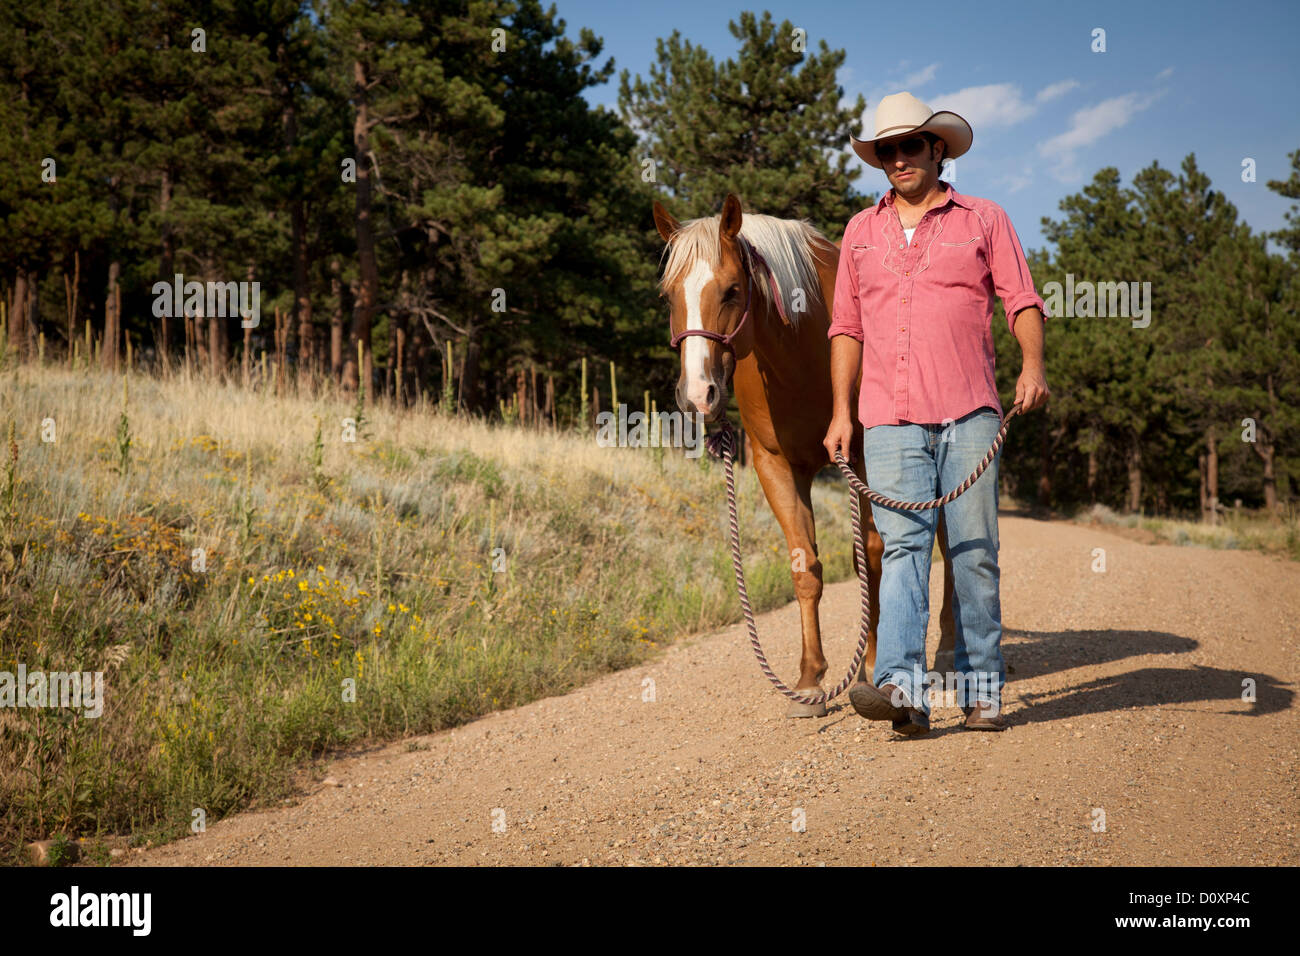 Man and horse walking on dirt road - Stock Image